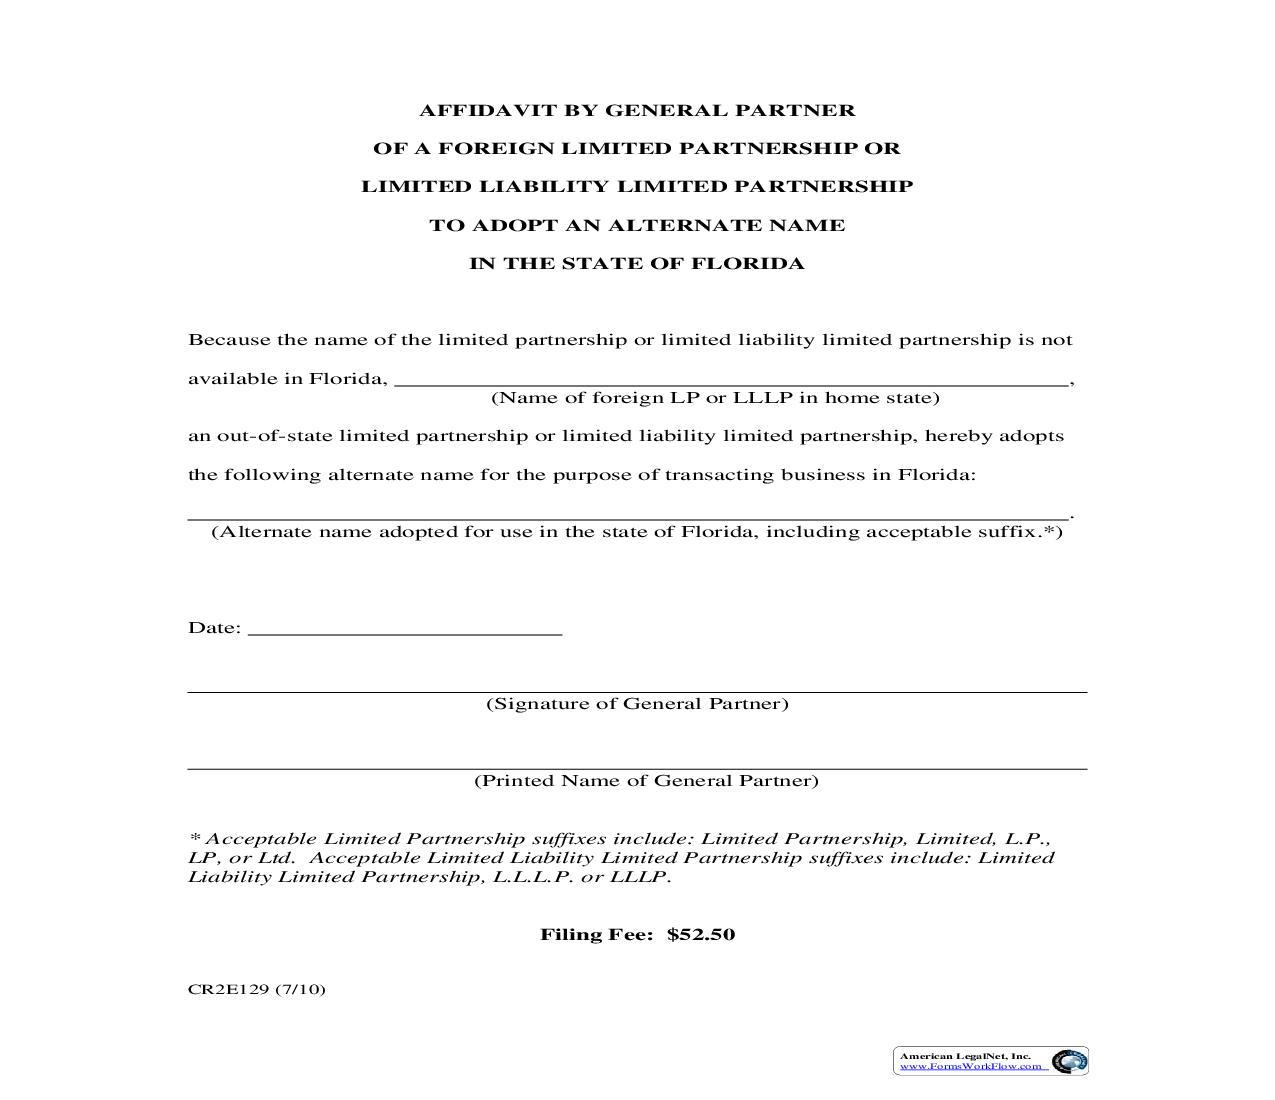 Affidavit By General Partner Of Foreign LP Or LLLP To Adopt Alternate Name {CR2E129} | Pdf Fpdf Doc Docx | Florida